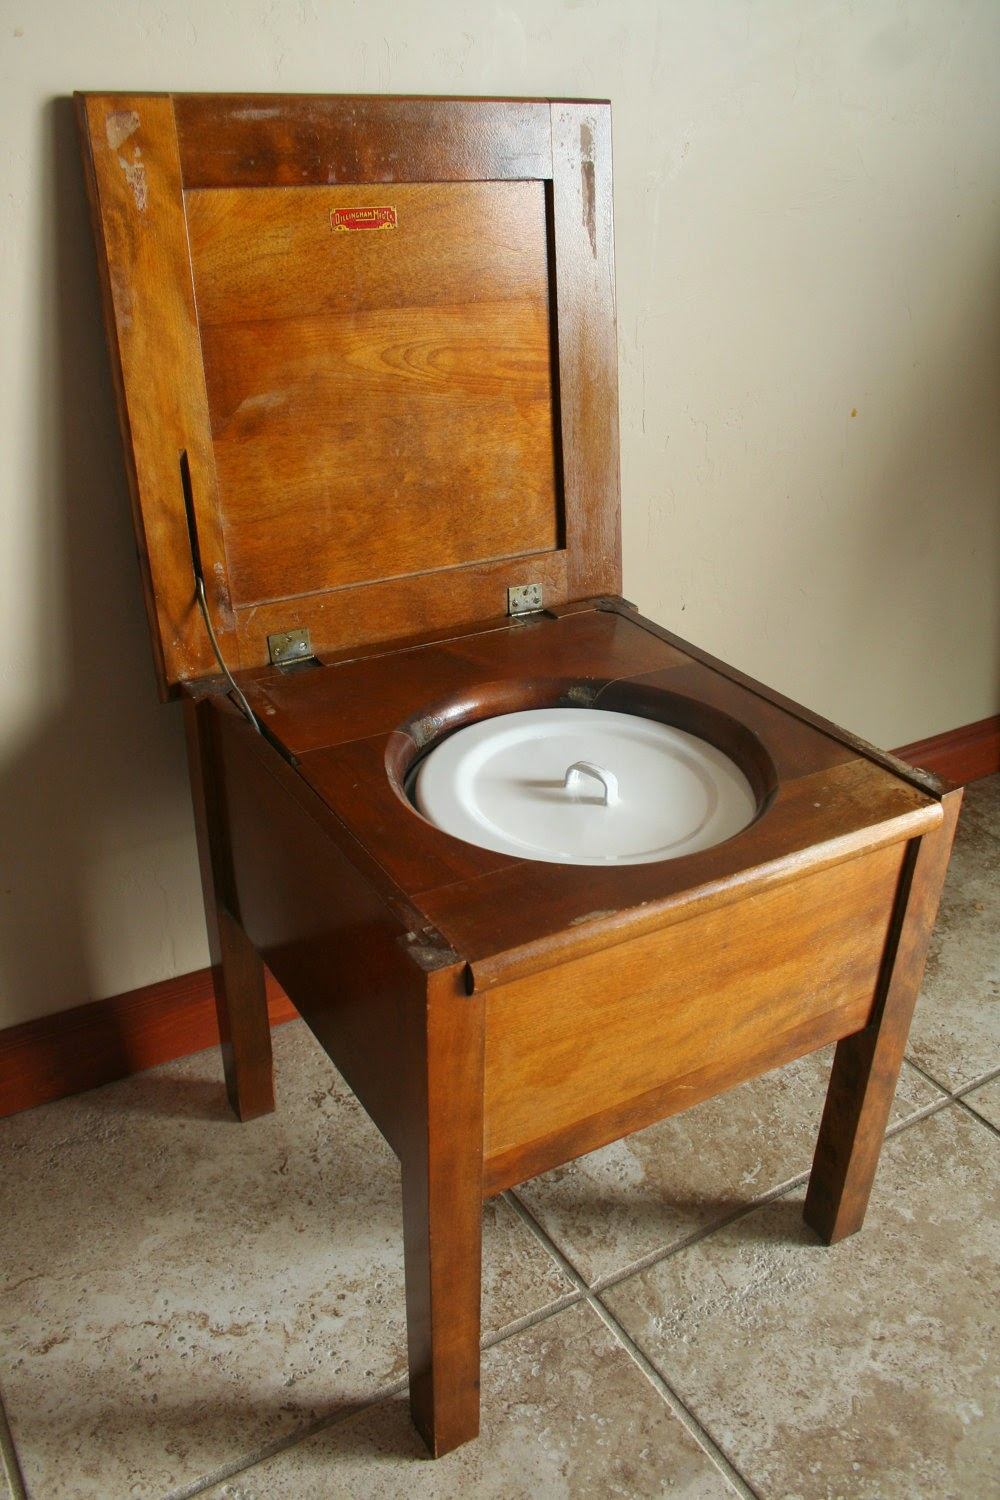 Yours Truly, Constable Dooley: Ala Commode